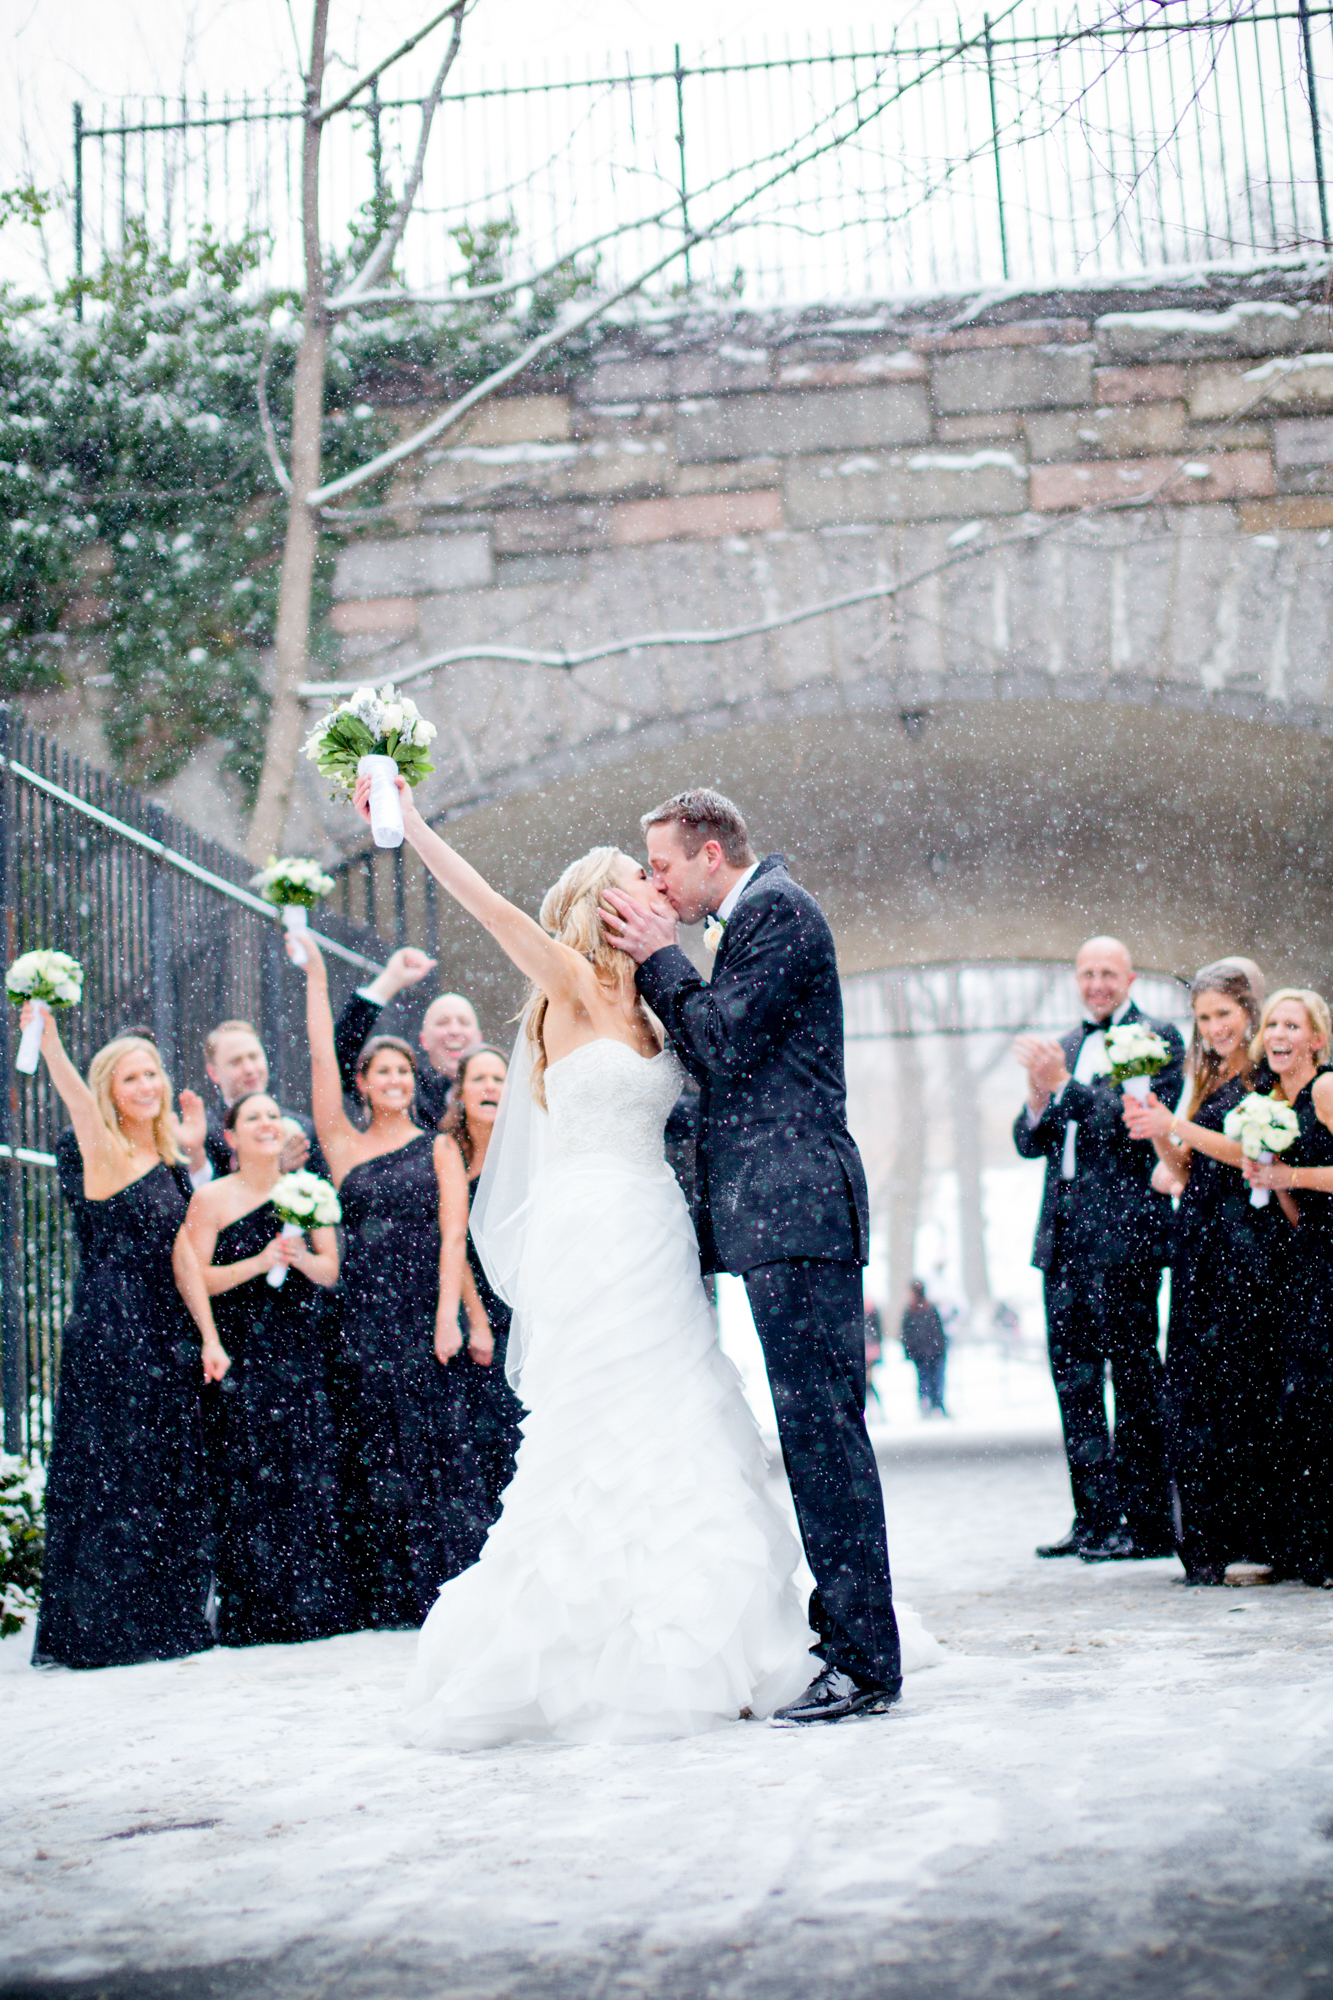 072_CarlyGaebe_SteadfastStudio_WeddingPhotography_NewYorkCity_CentralPark_Winter_Romantic_Snowing_Bride_Groom_Bouquet_Ring_WeddingParty.jpg